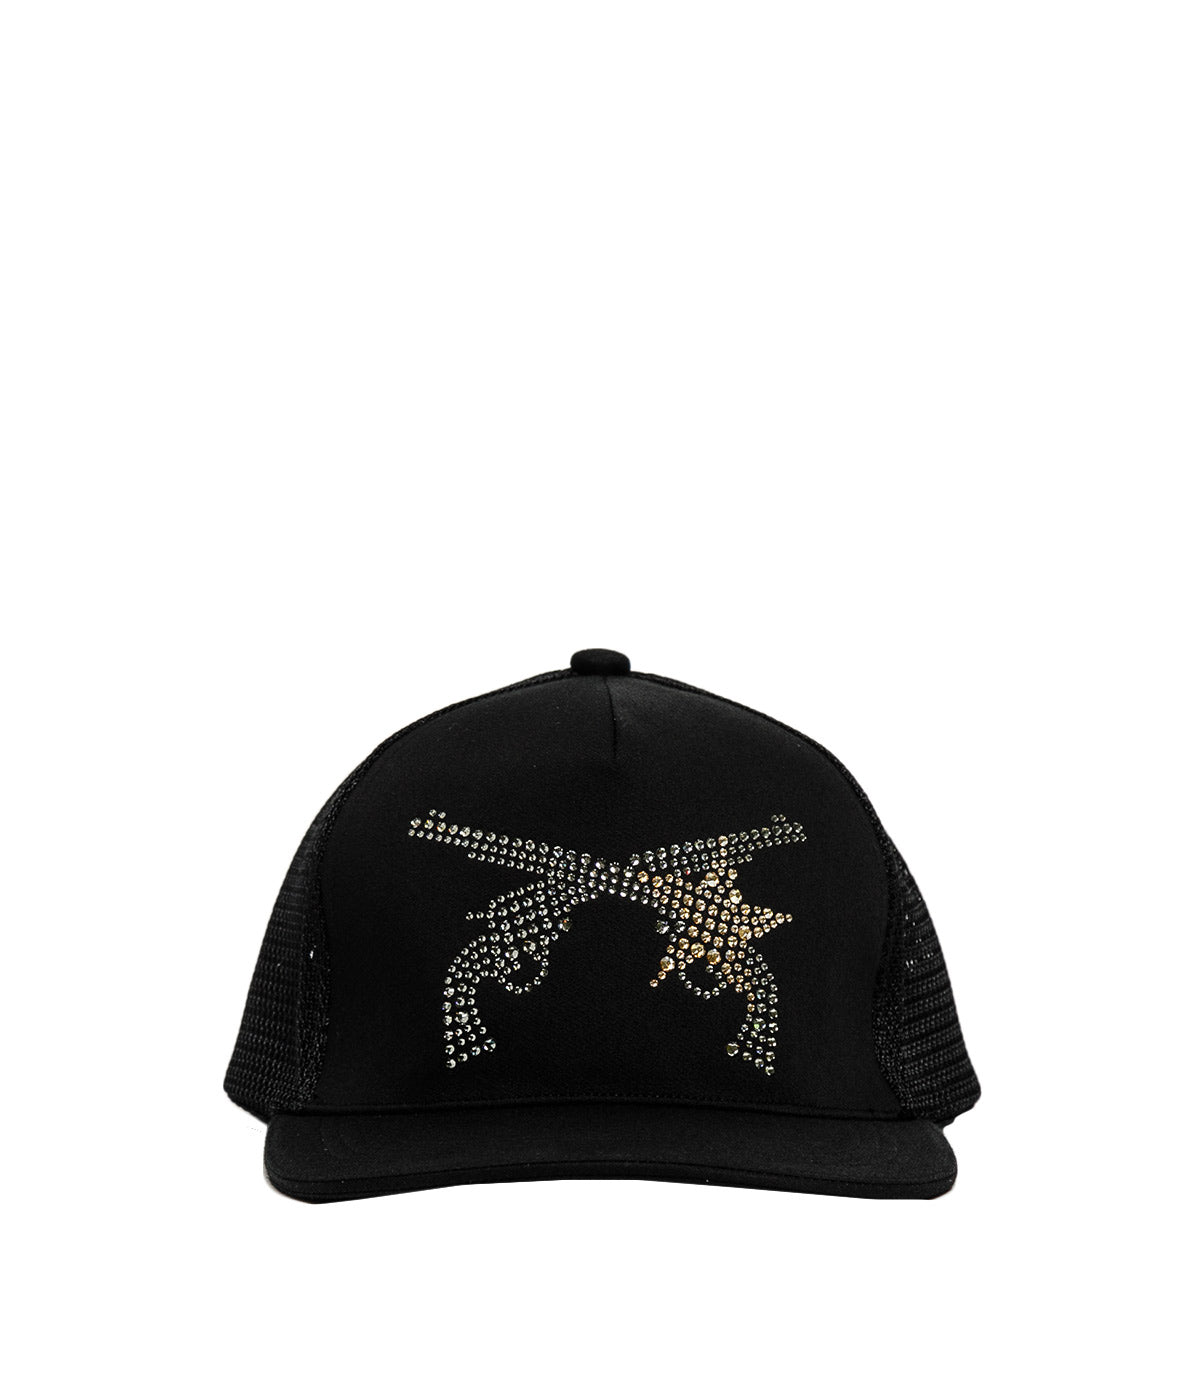 Black Pistol Star Cap